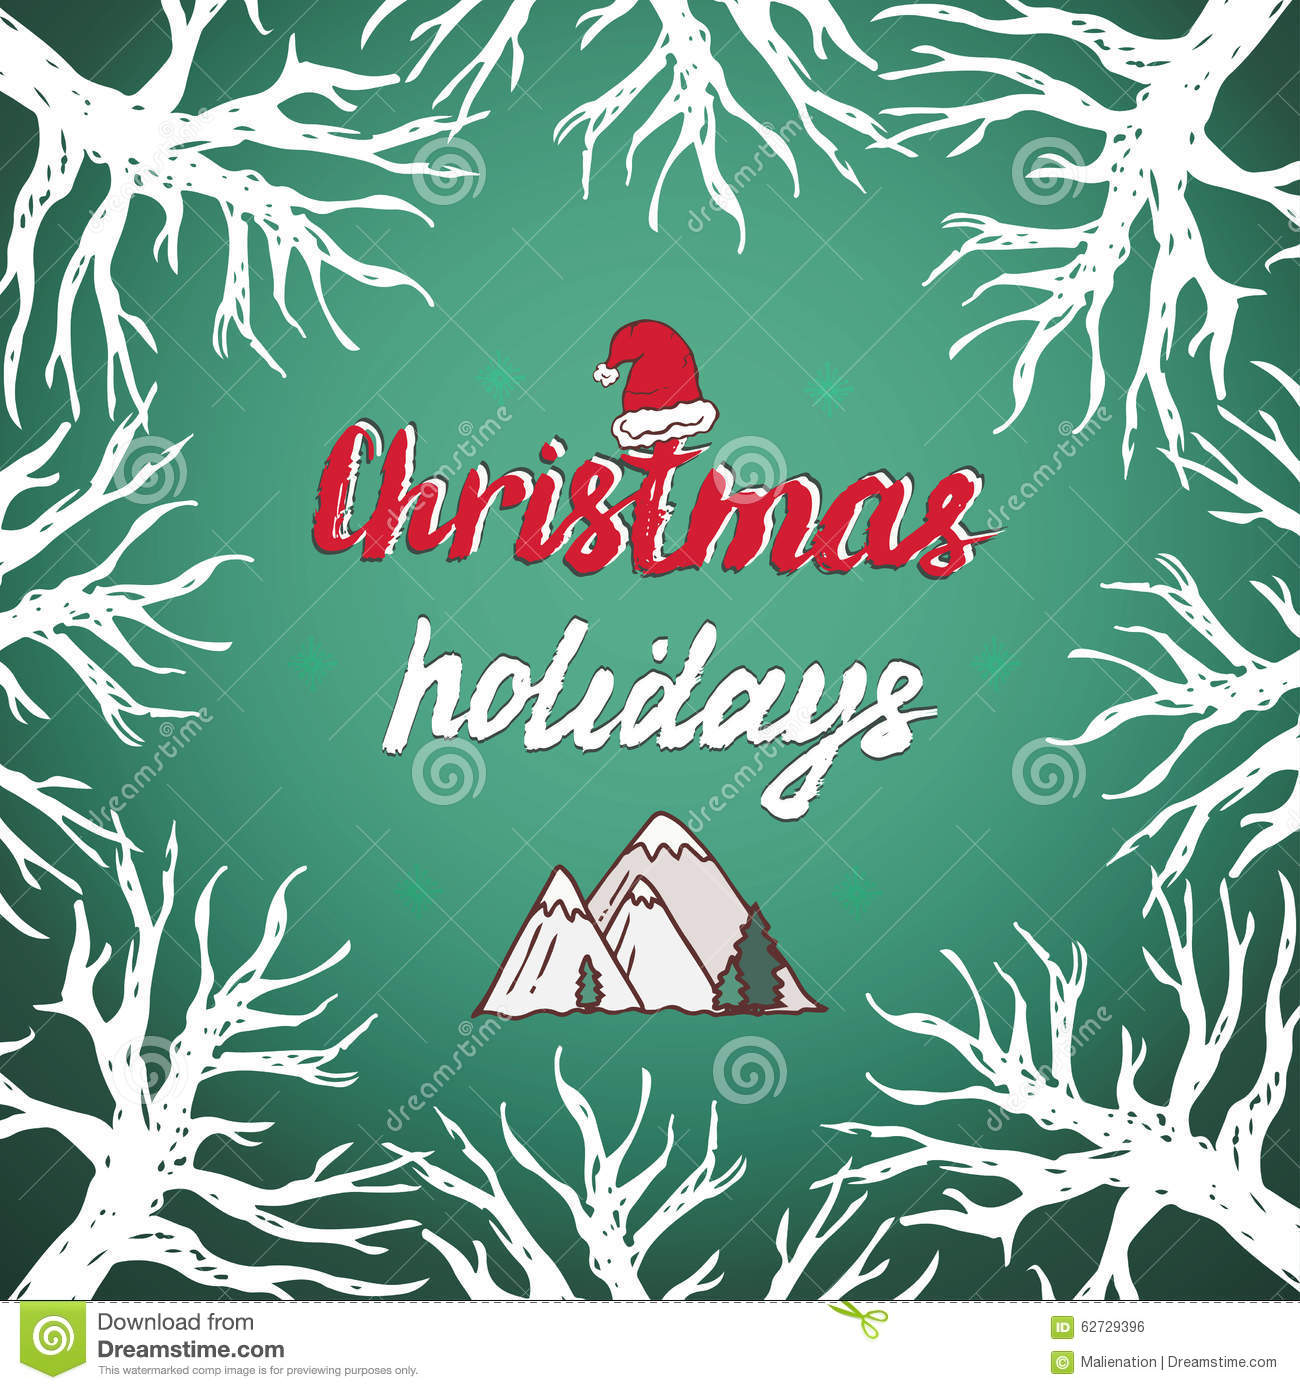 Christmas holidays greetings card with lettering vector trees christmas holidays greetings card with lettering vector trees background kristyandbryce Image collections